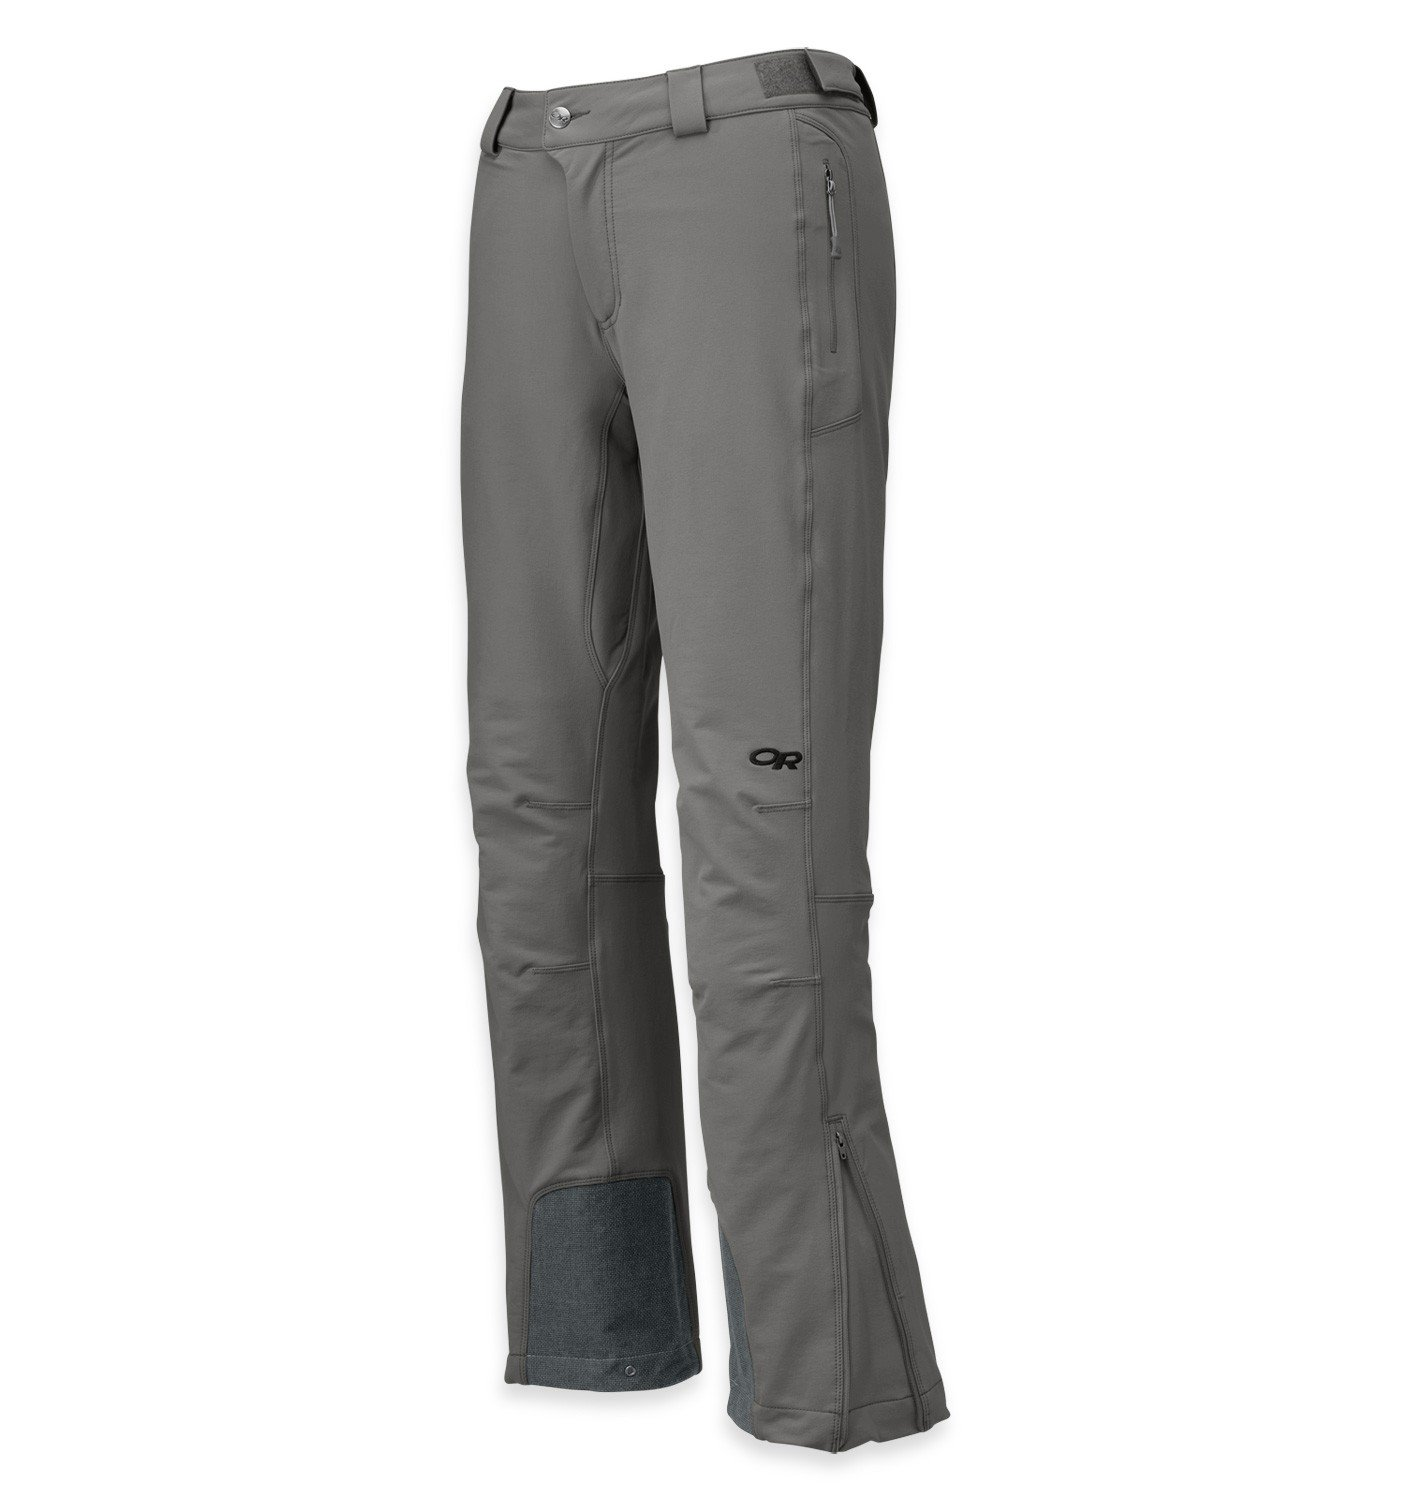 Outdoor Research Women's Cirque Pants 96410